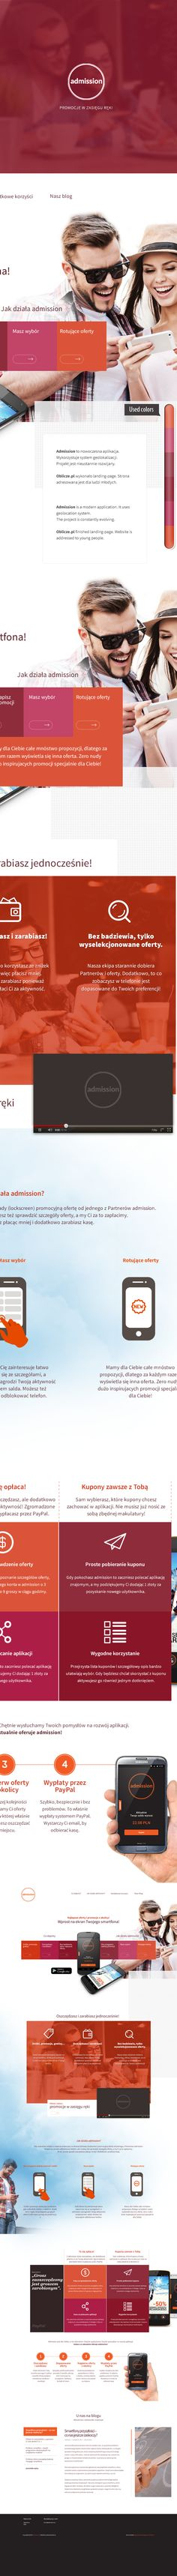 Geolocalization Mobile App landing page on Behance